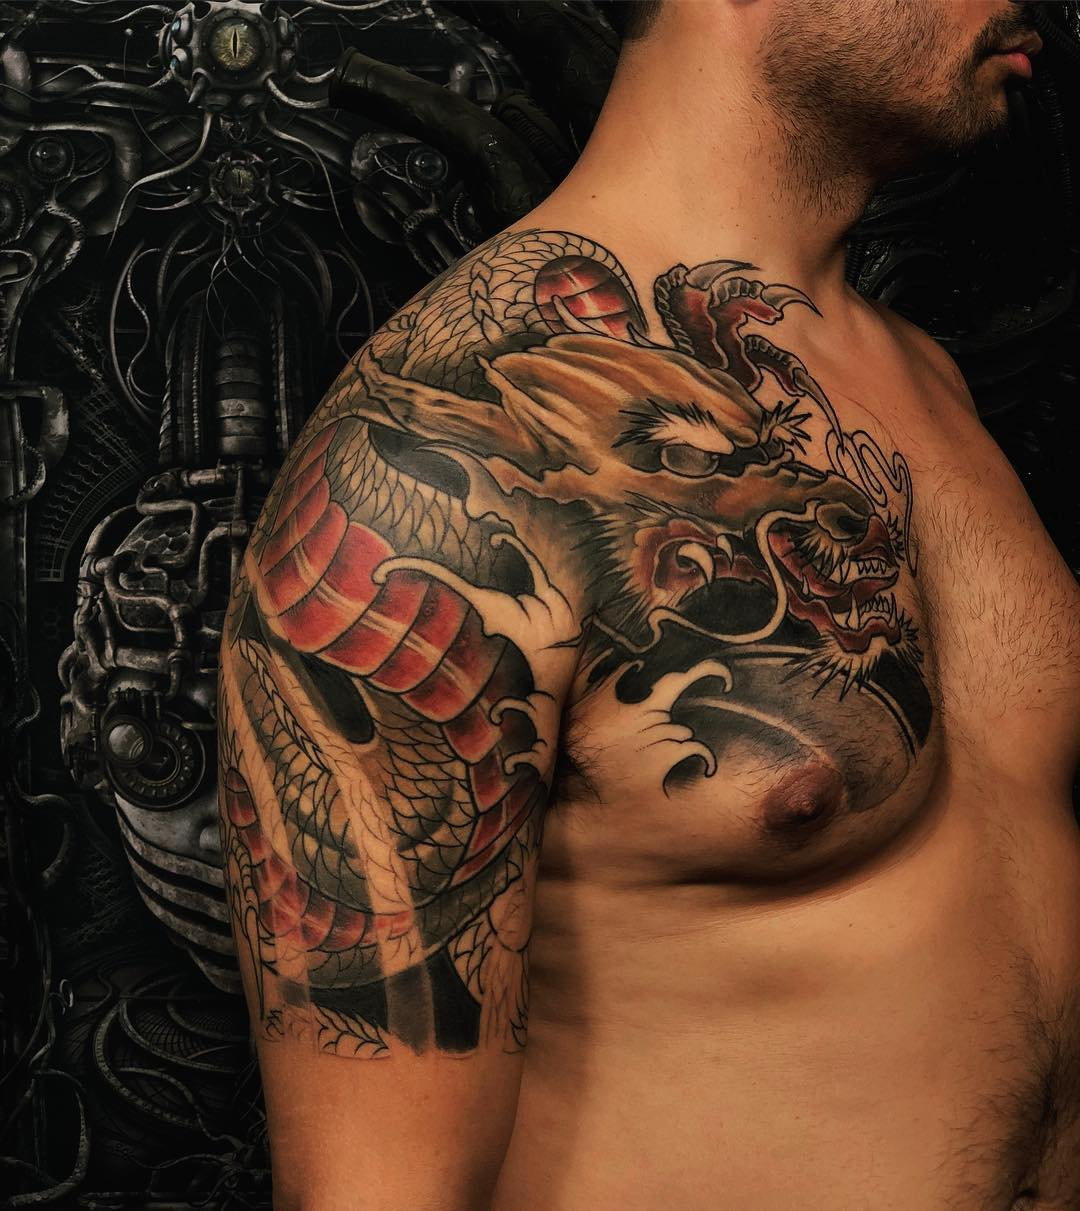 Japanese tattoo of a dragon by Niloy Das